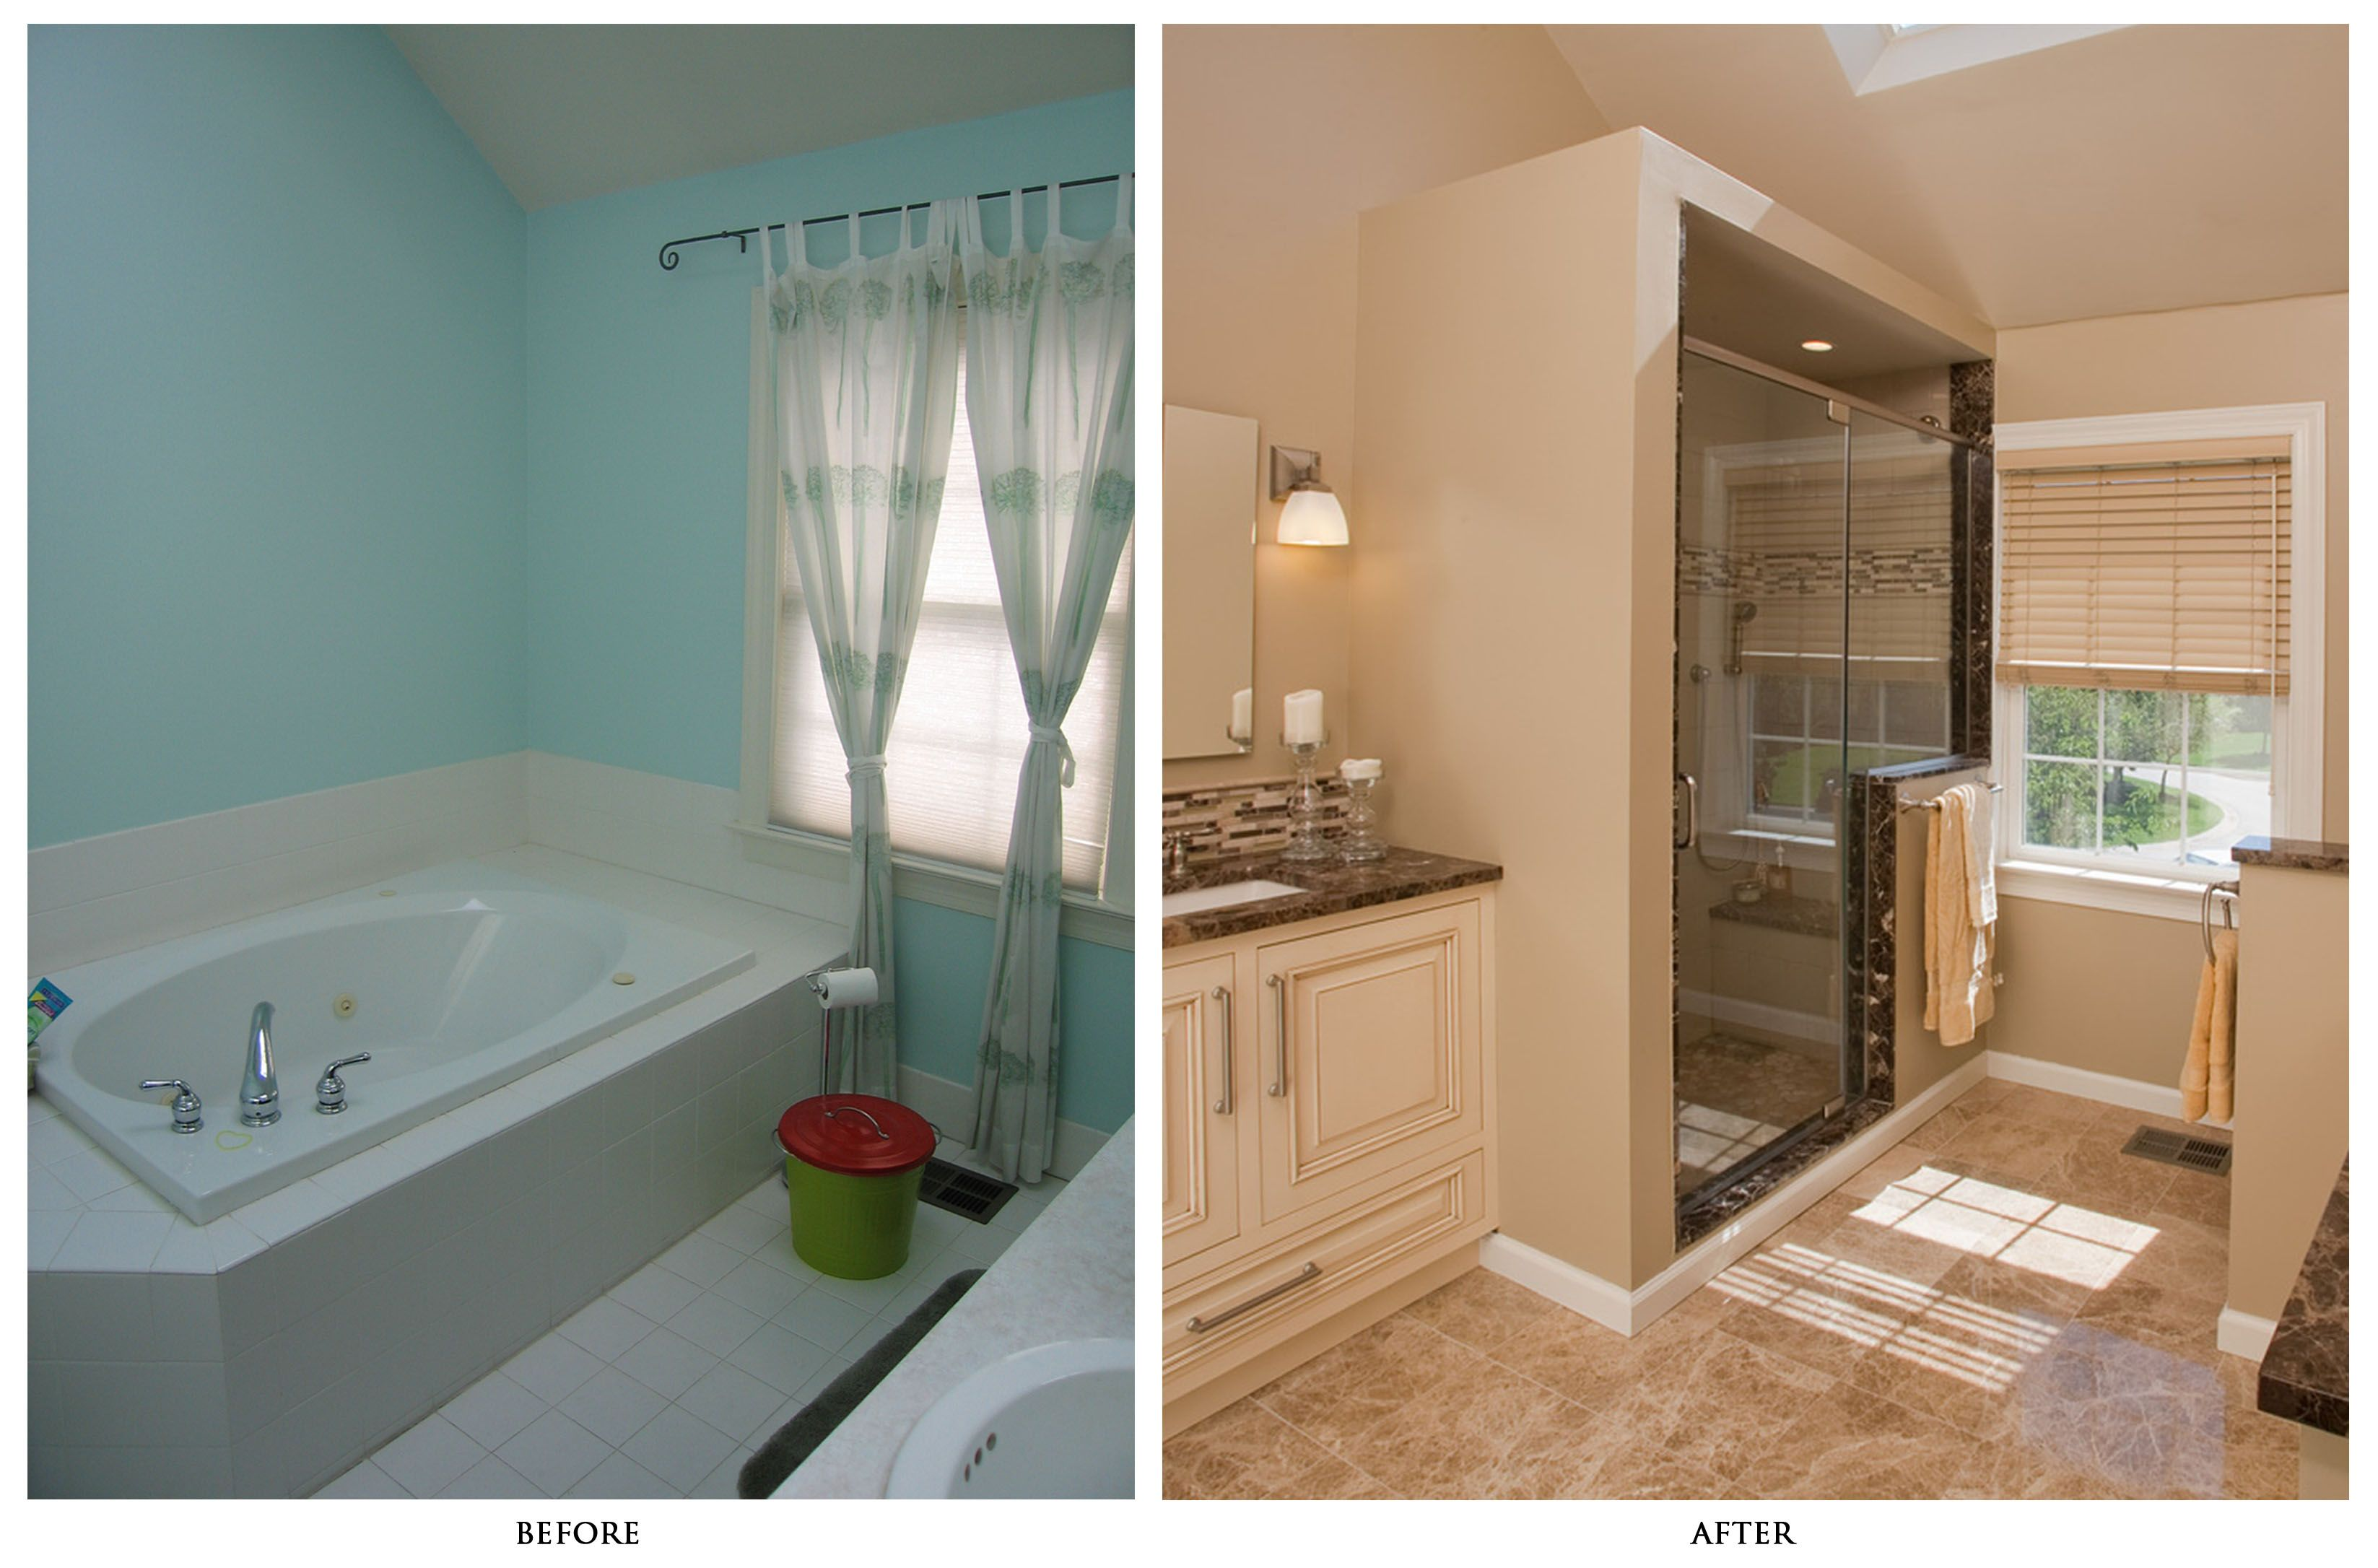 Small bathroom renovations before and after - Small Bathroom Remodels Pictures Before And After Home Decorations Remodeling A Mobile Home Bathroom